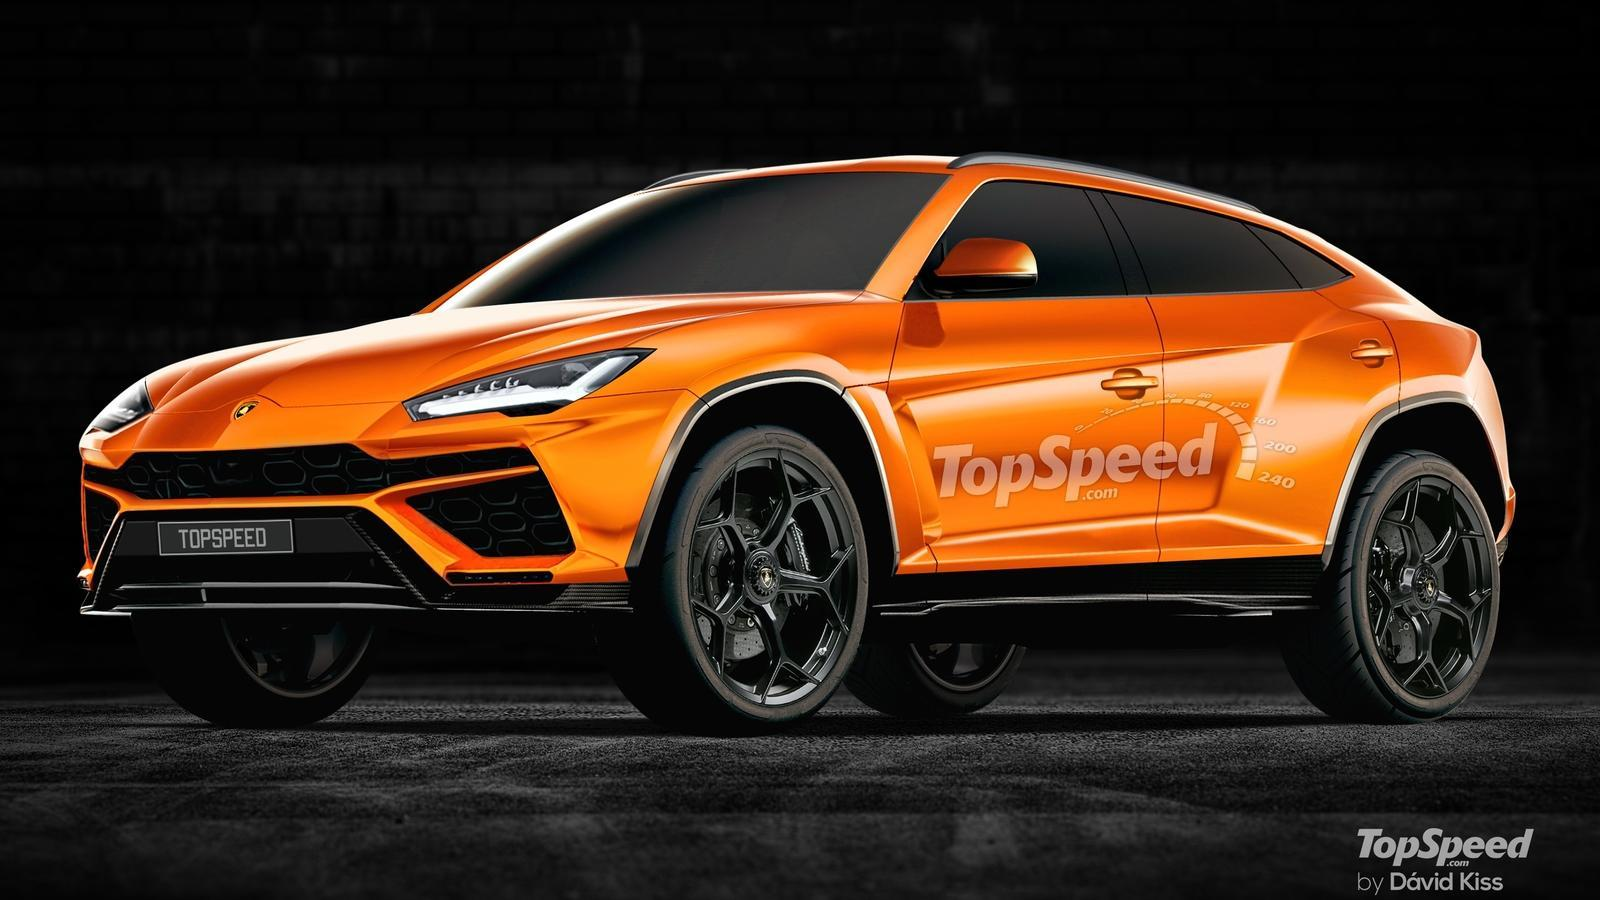 Lamborghini S Urus Suv Will Pack 650 Horsepower Top Speed